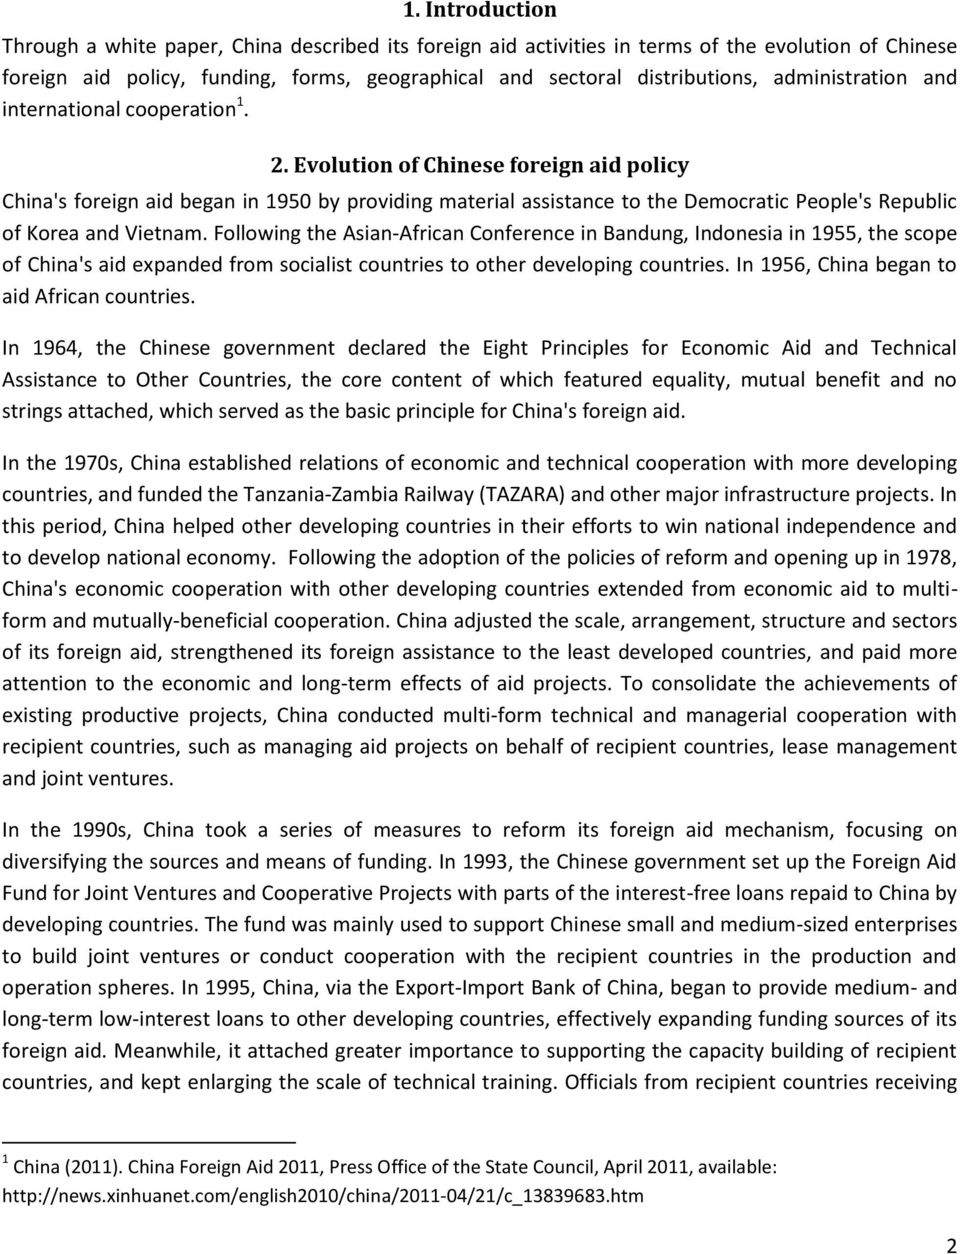 Evolution of Chinese foreign aid policy China's foreign aid began in 1950 by providing material assistance to the Democratic People's Republic of Korea and Vietnam.